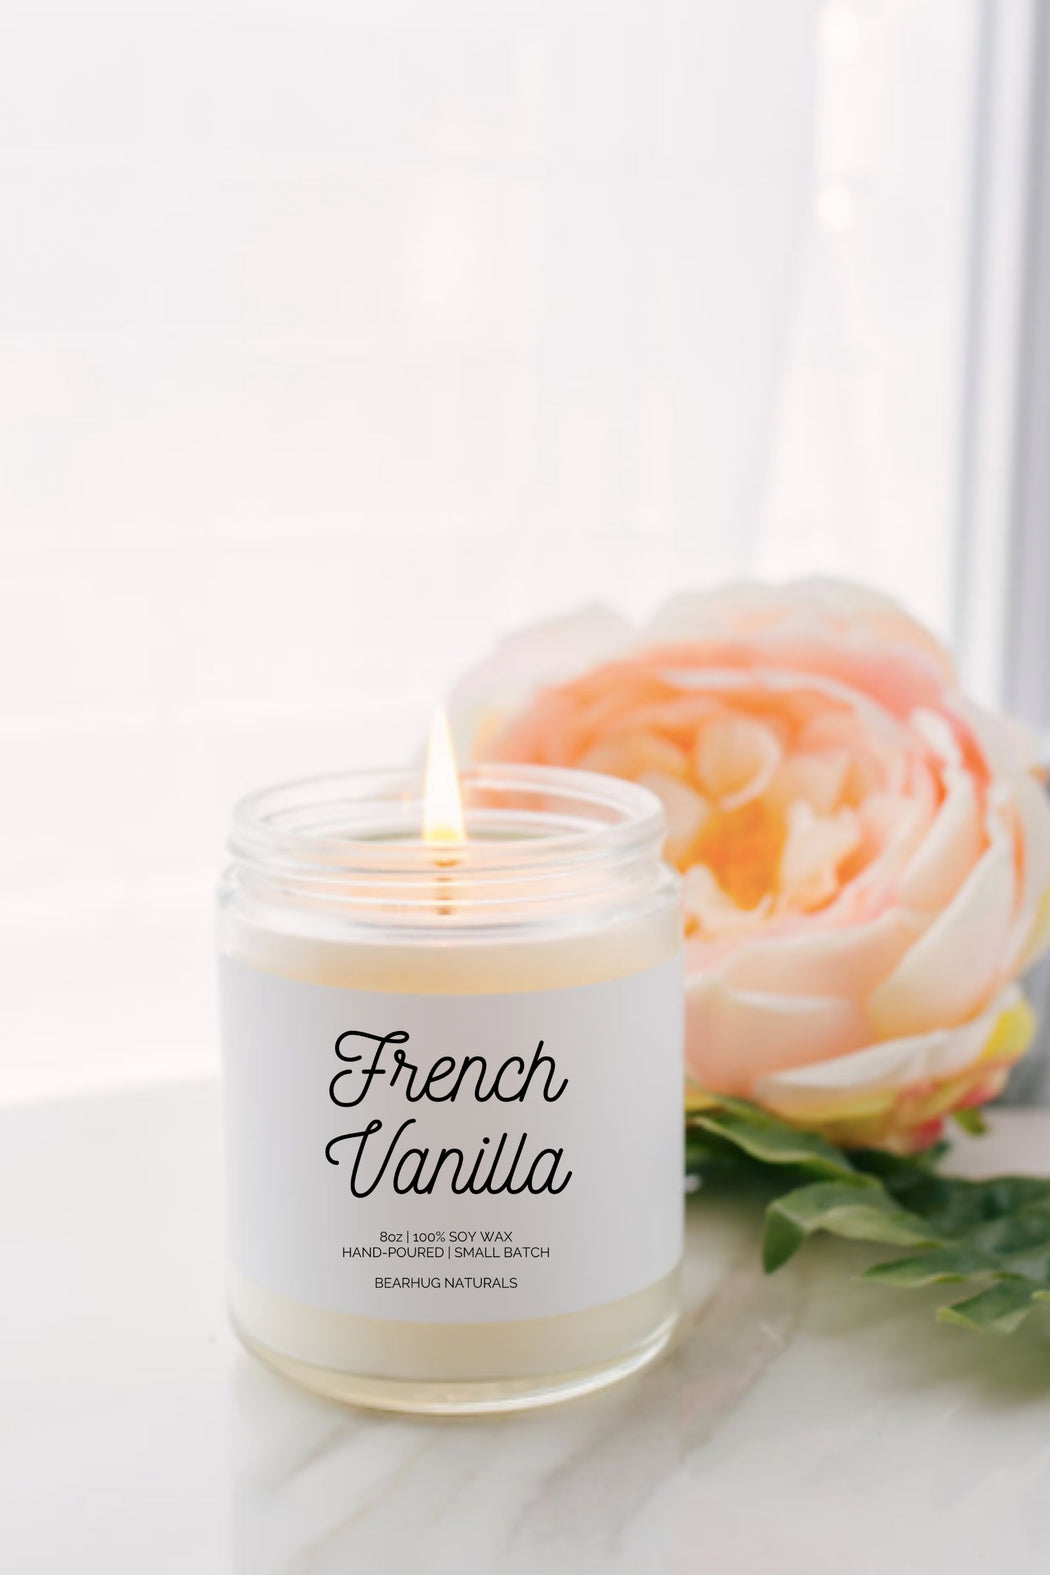 Spa Gift box for Best Friend,  French Vanilla  Candle Gift,  Girlfriend Gift, Best friend gift, Spa Gift Set, Soy Candle Gift Set